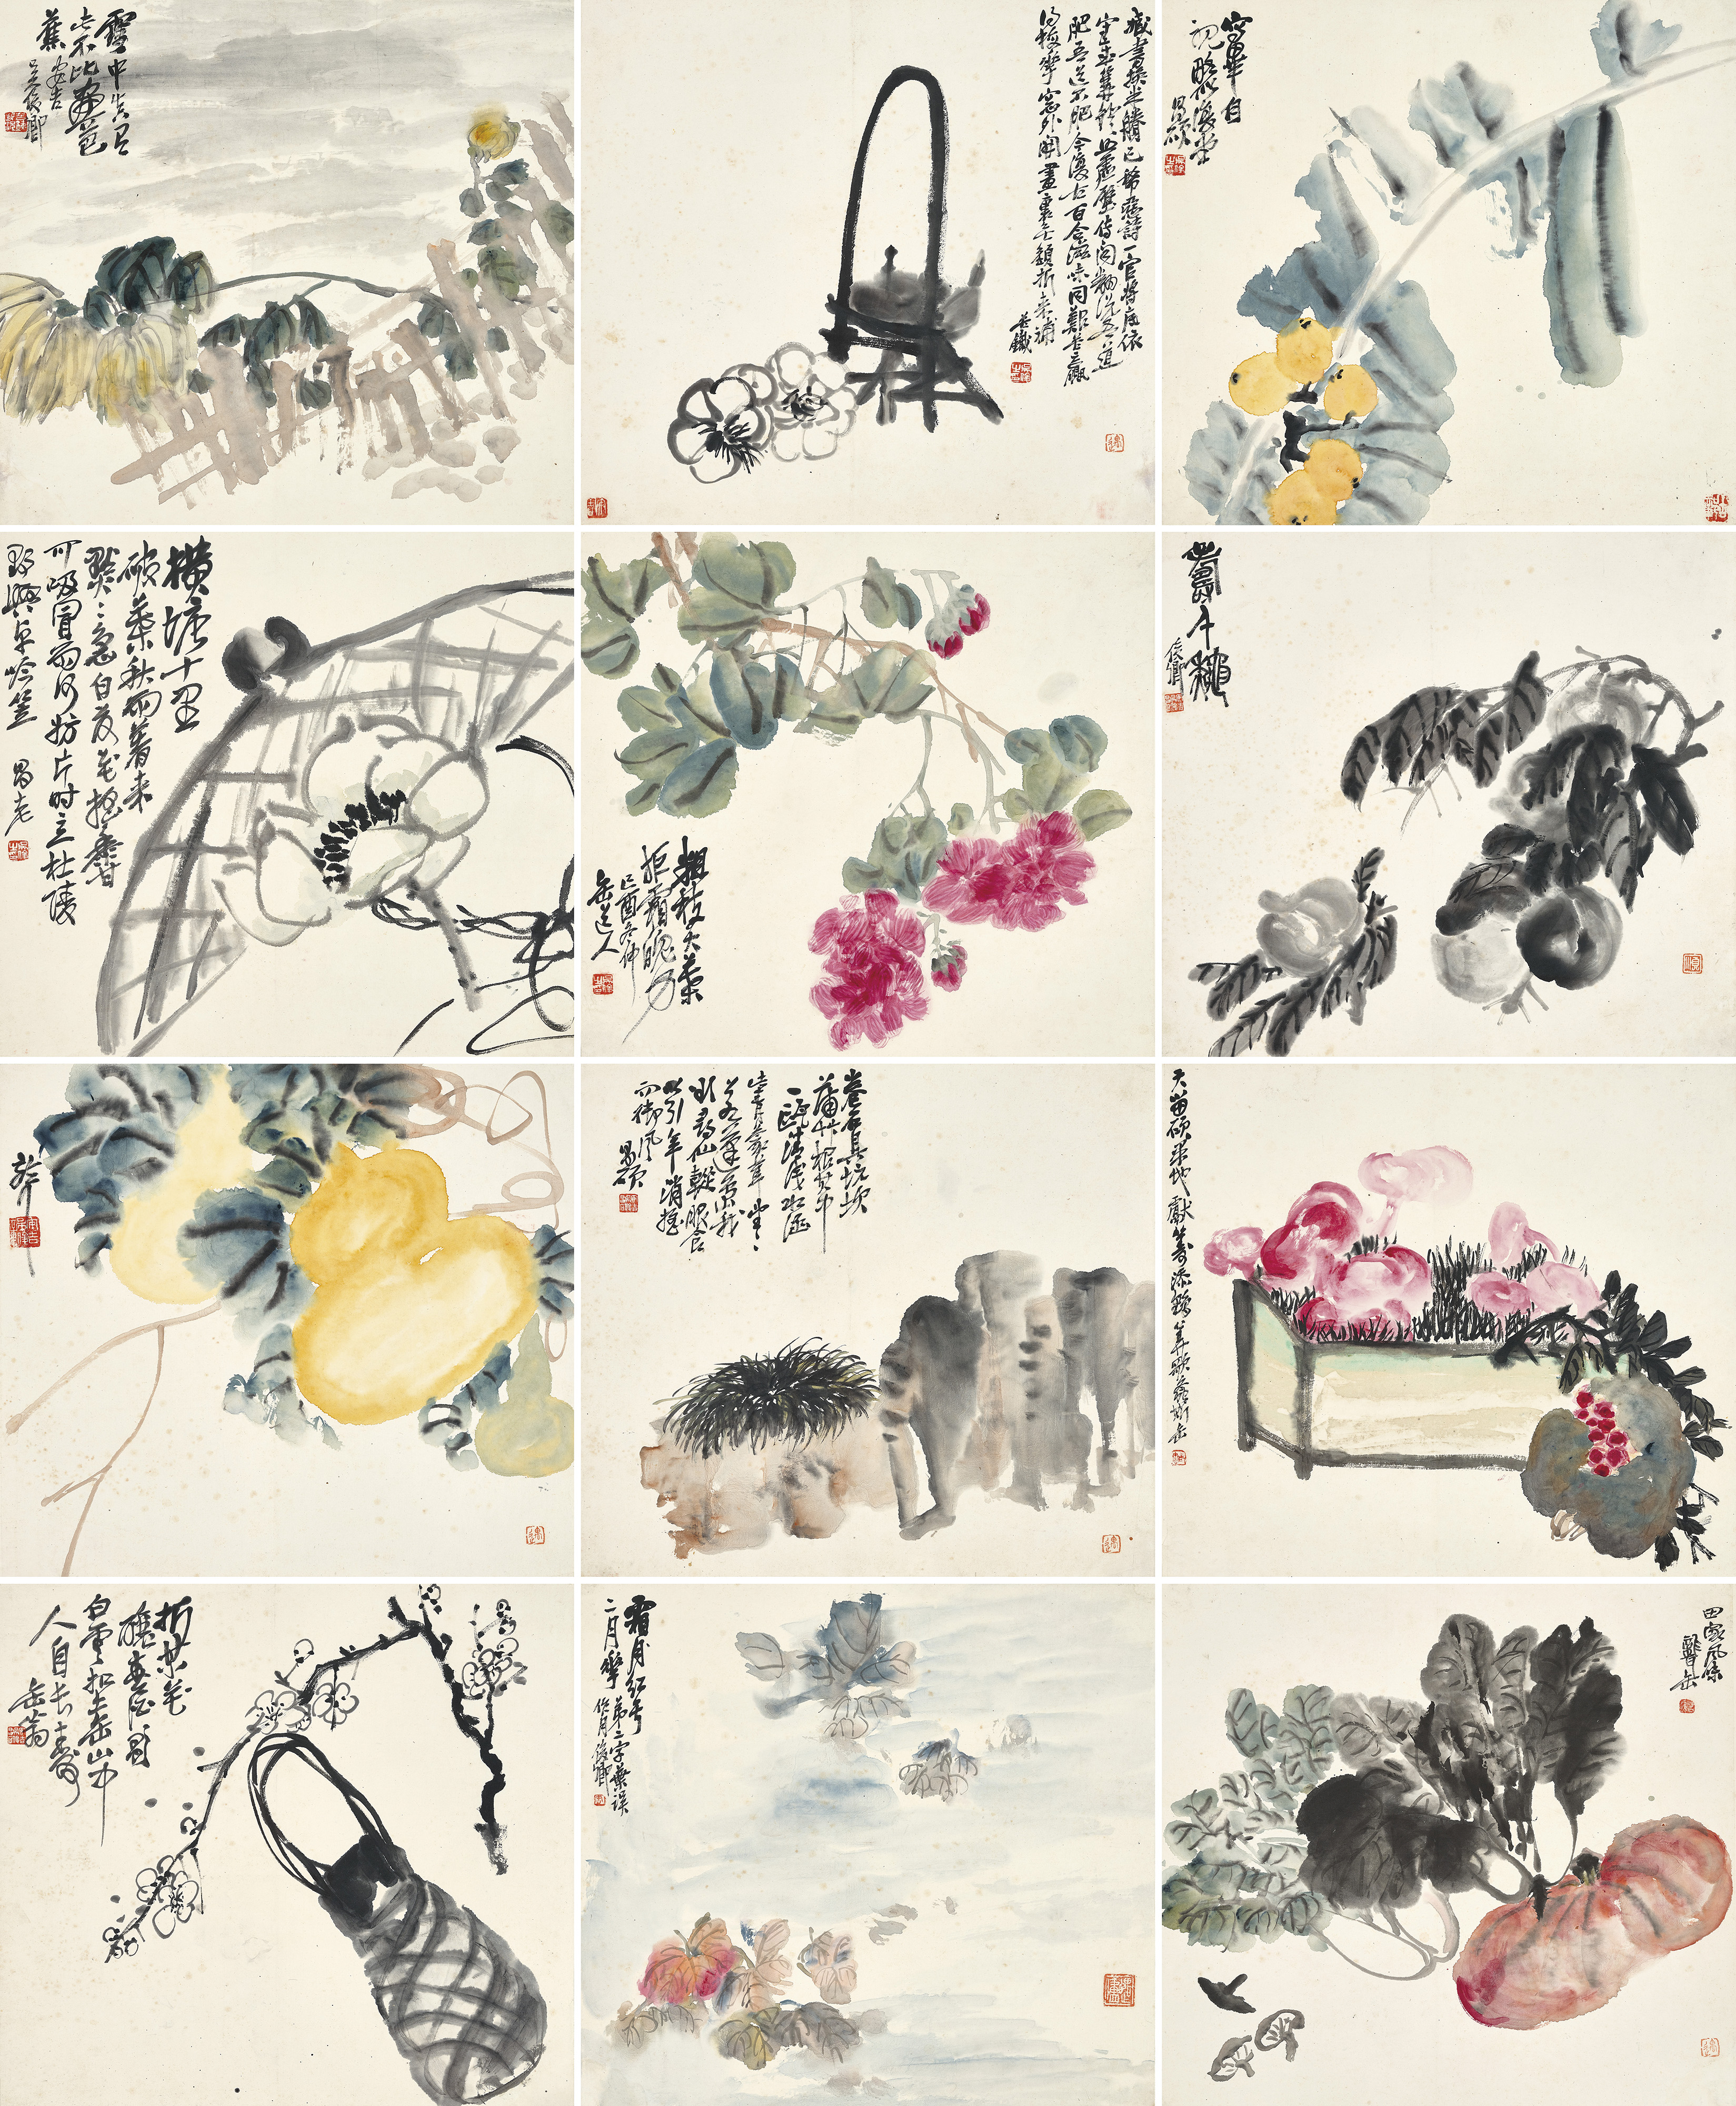 Property from a private Hong Kong collection. Wu Changshuo (1844-1927), Album of Flowers, Vegetables and Objects, 1909. Album of twelve leaves, ink and colour on paper. Each leaf measures 37.3 x 40.3 cm. (14 ⅝ x 15 ⅞ in.). Estimate HK$1,200,000 - 2,000,000. Offered in Fine Chinese Modern and Contemporary Ink Paintings on 1 December at Christie's in Hong Kong